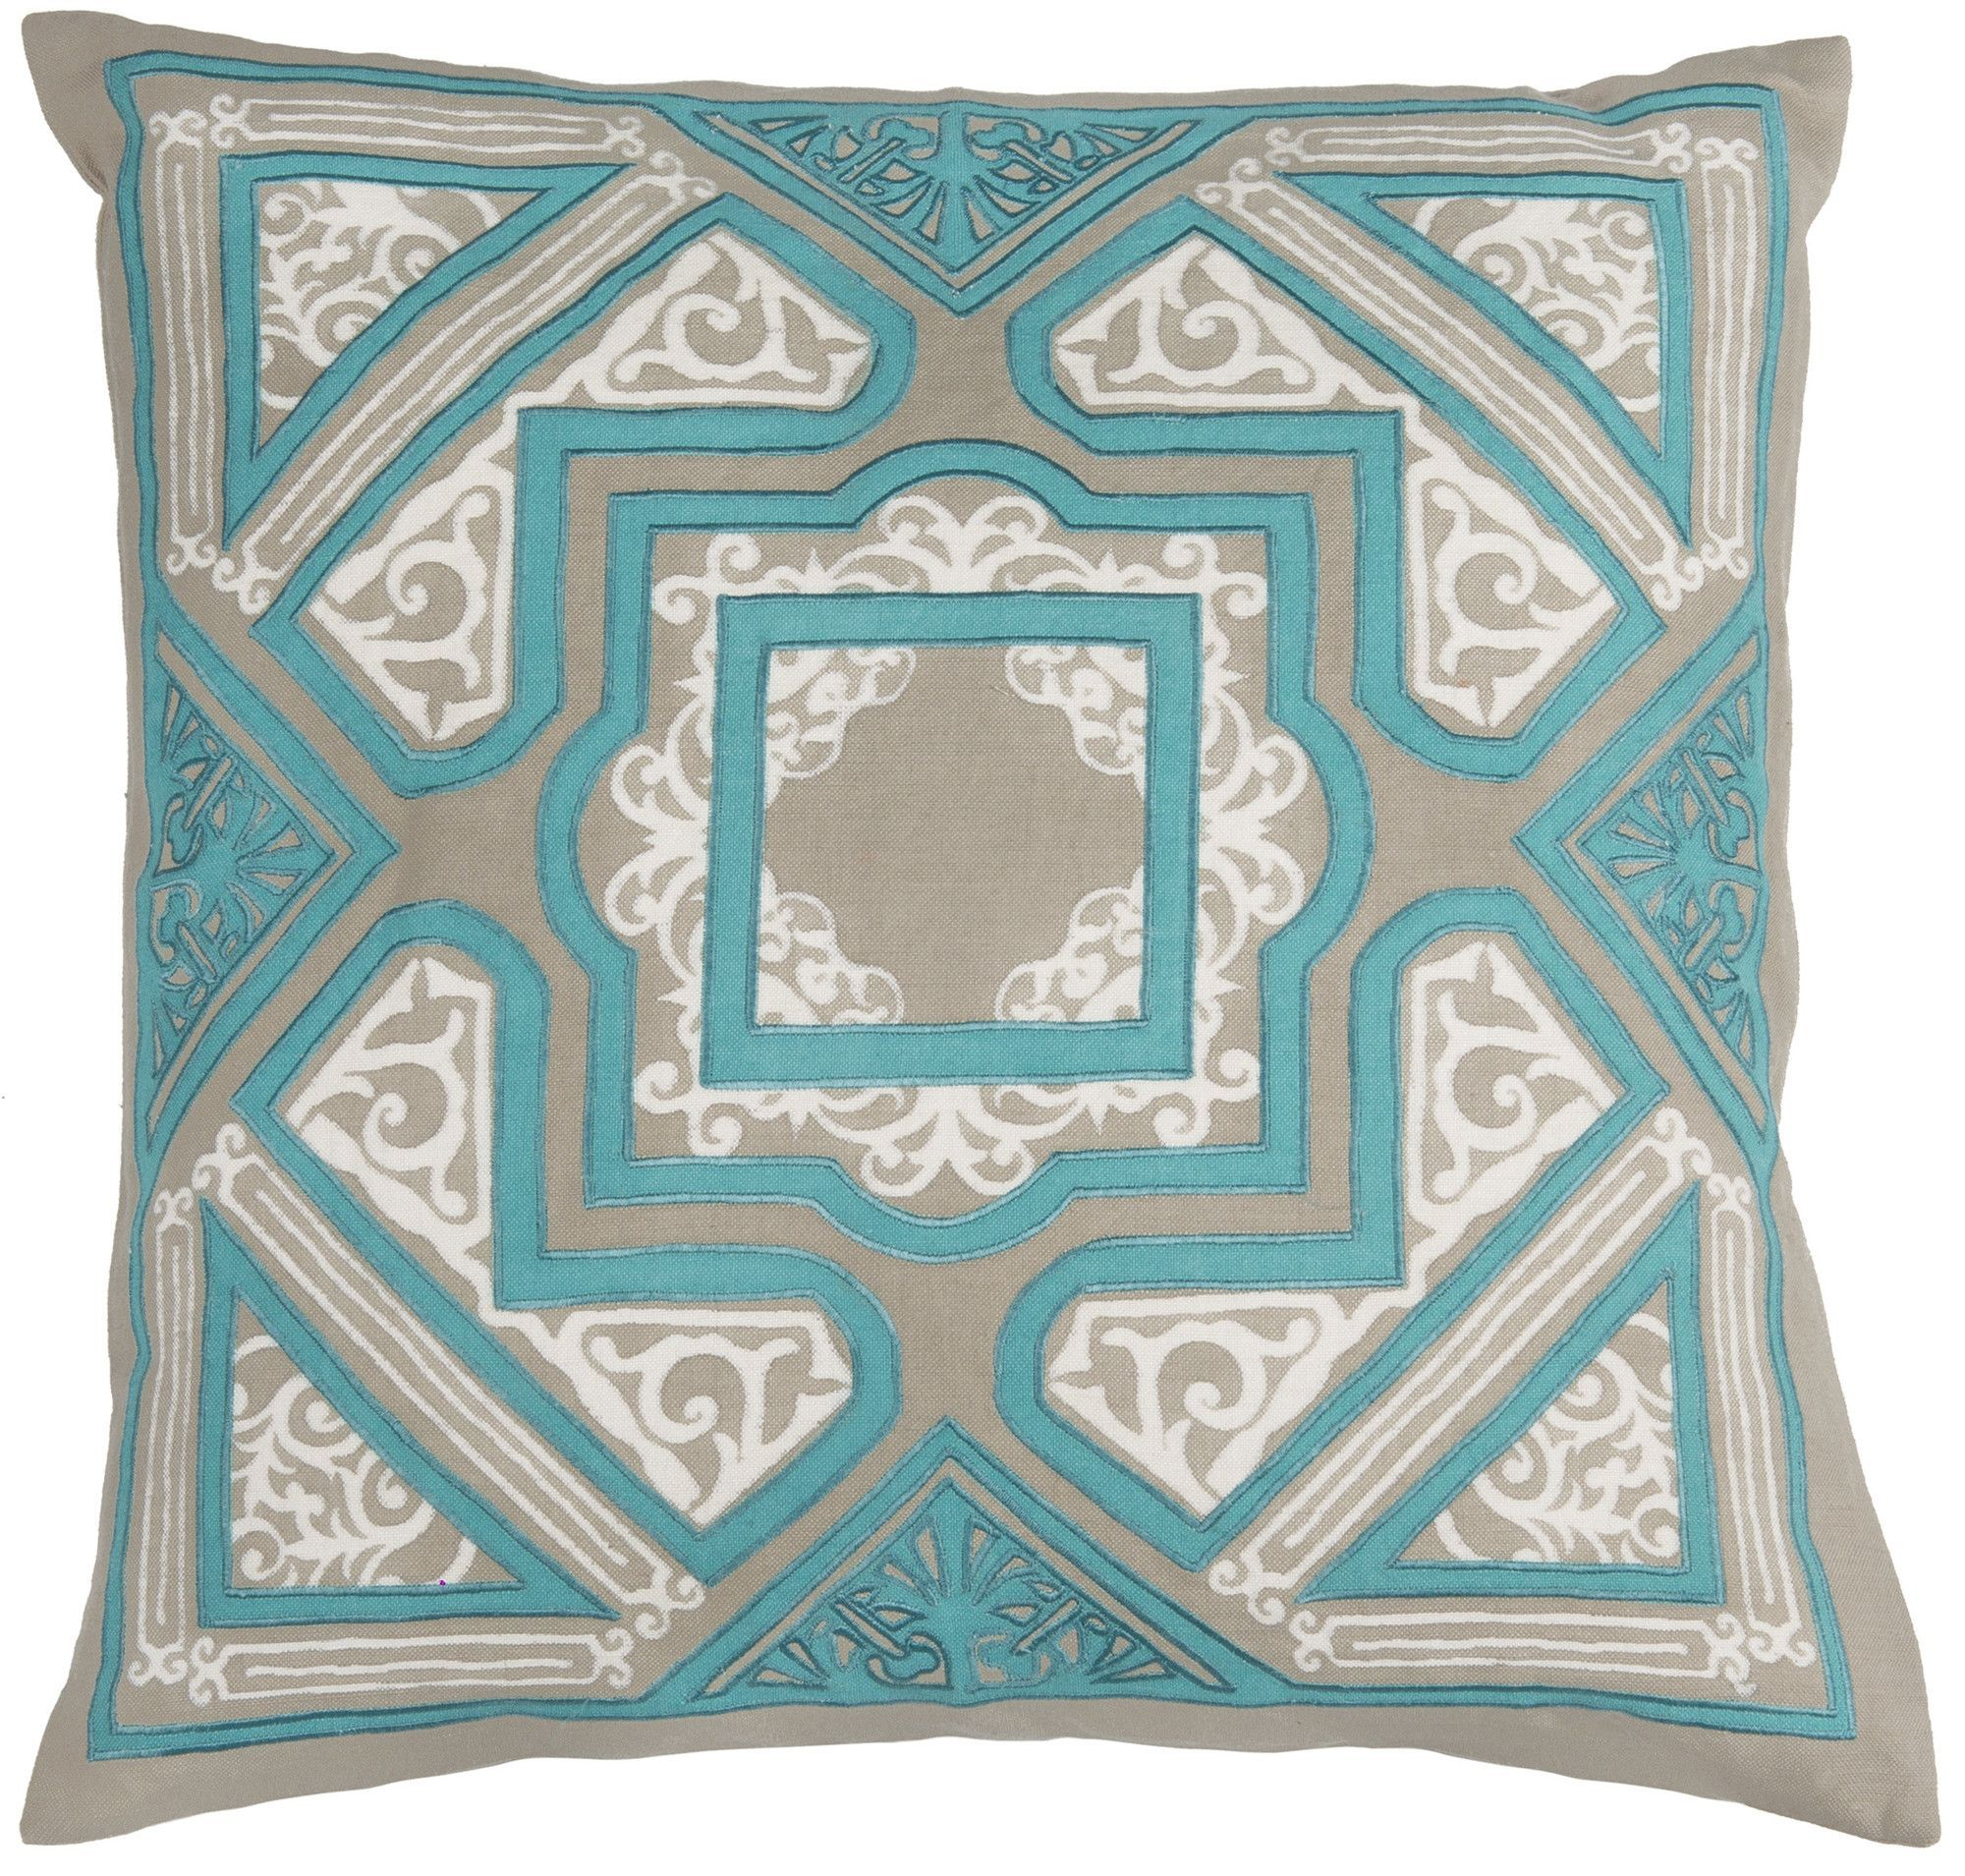 Elyseum throw pillow throw pillows pillows and products